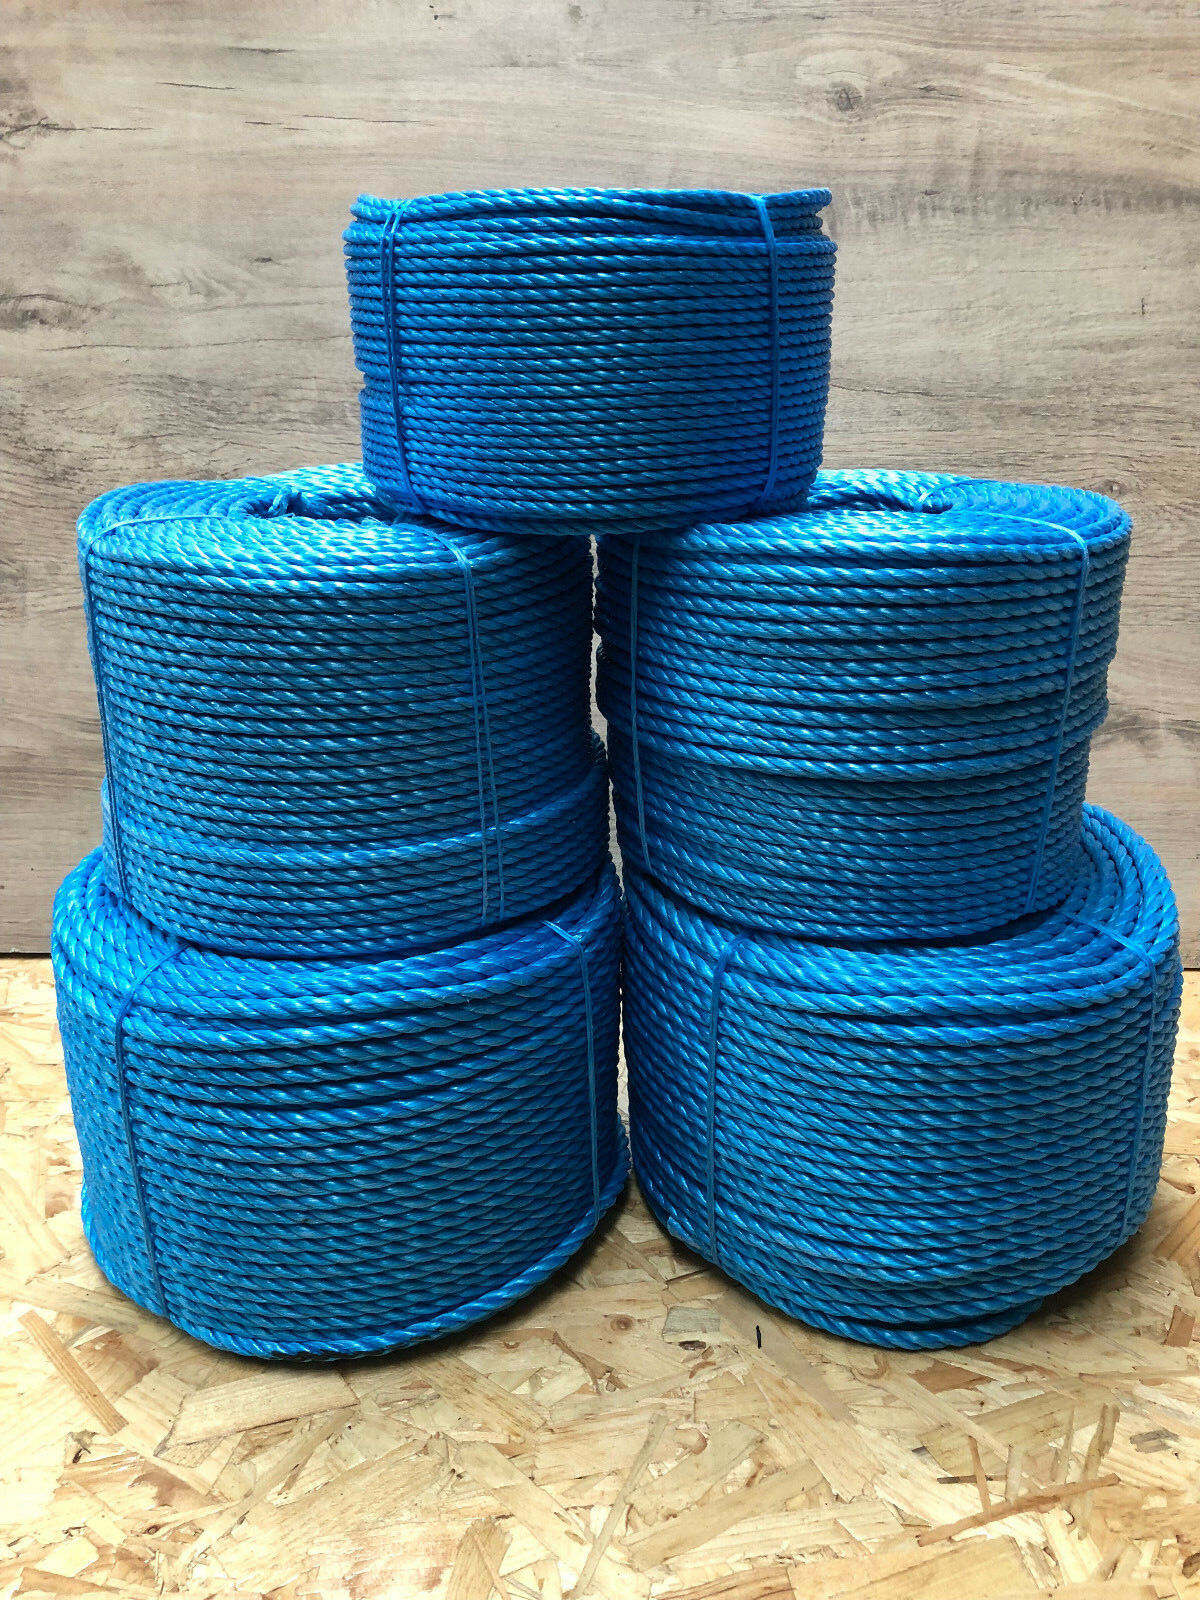 bluee Poly Rope Polypropylene Various Sizes Lengths 6mm-24mm tarpaulins use